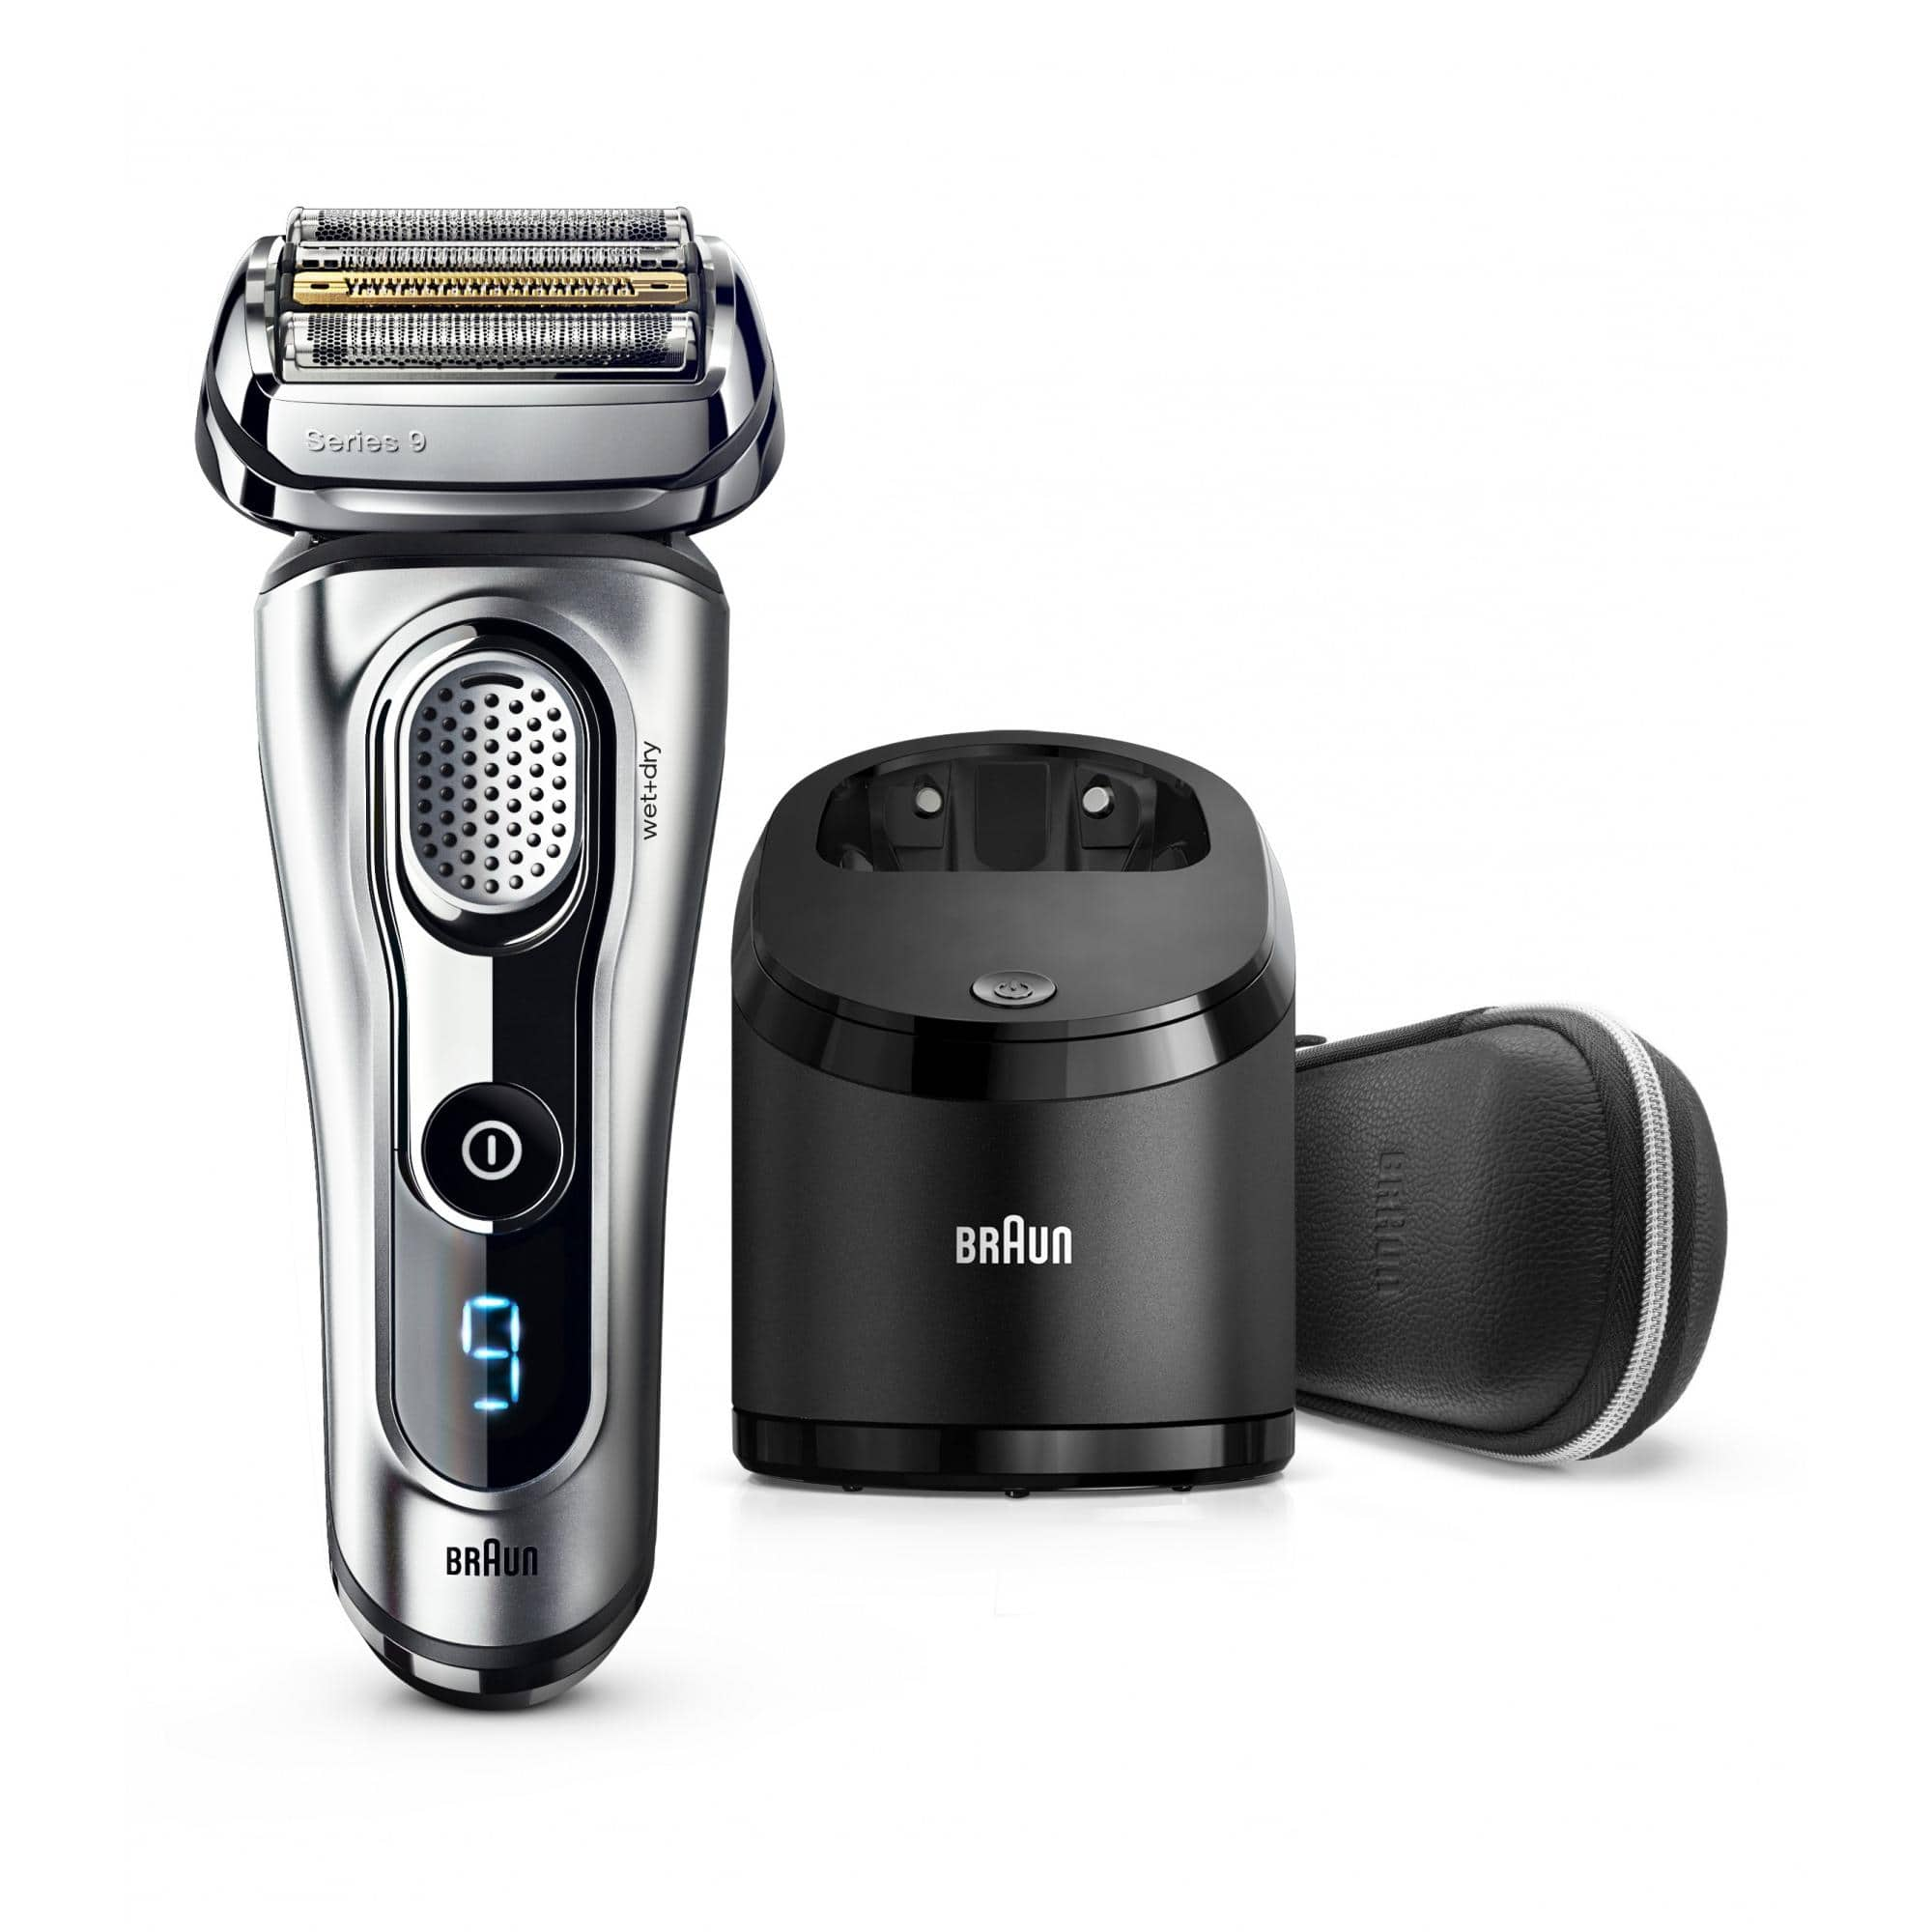 Walmart: Braun Series 9 9290cc ($30 Coupon Eligible) Flash Sale + Free Delivery, until 12/10